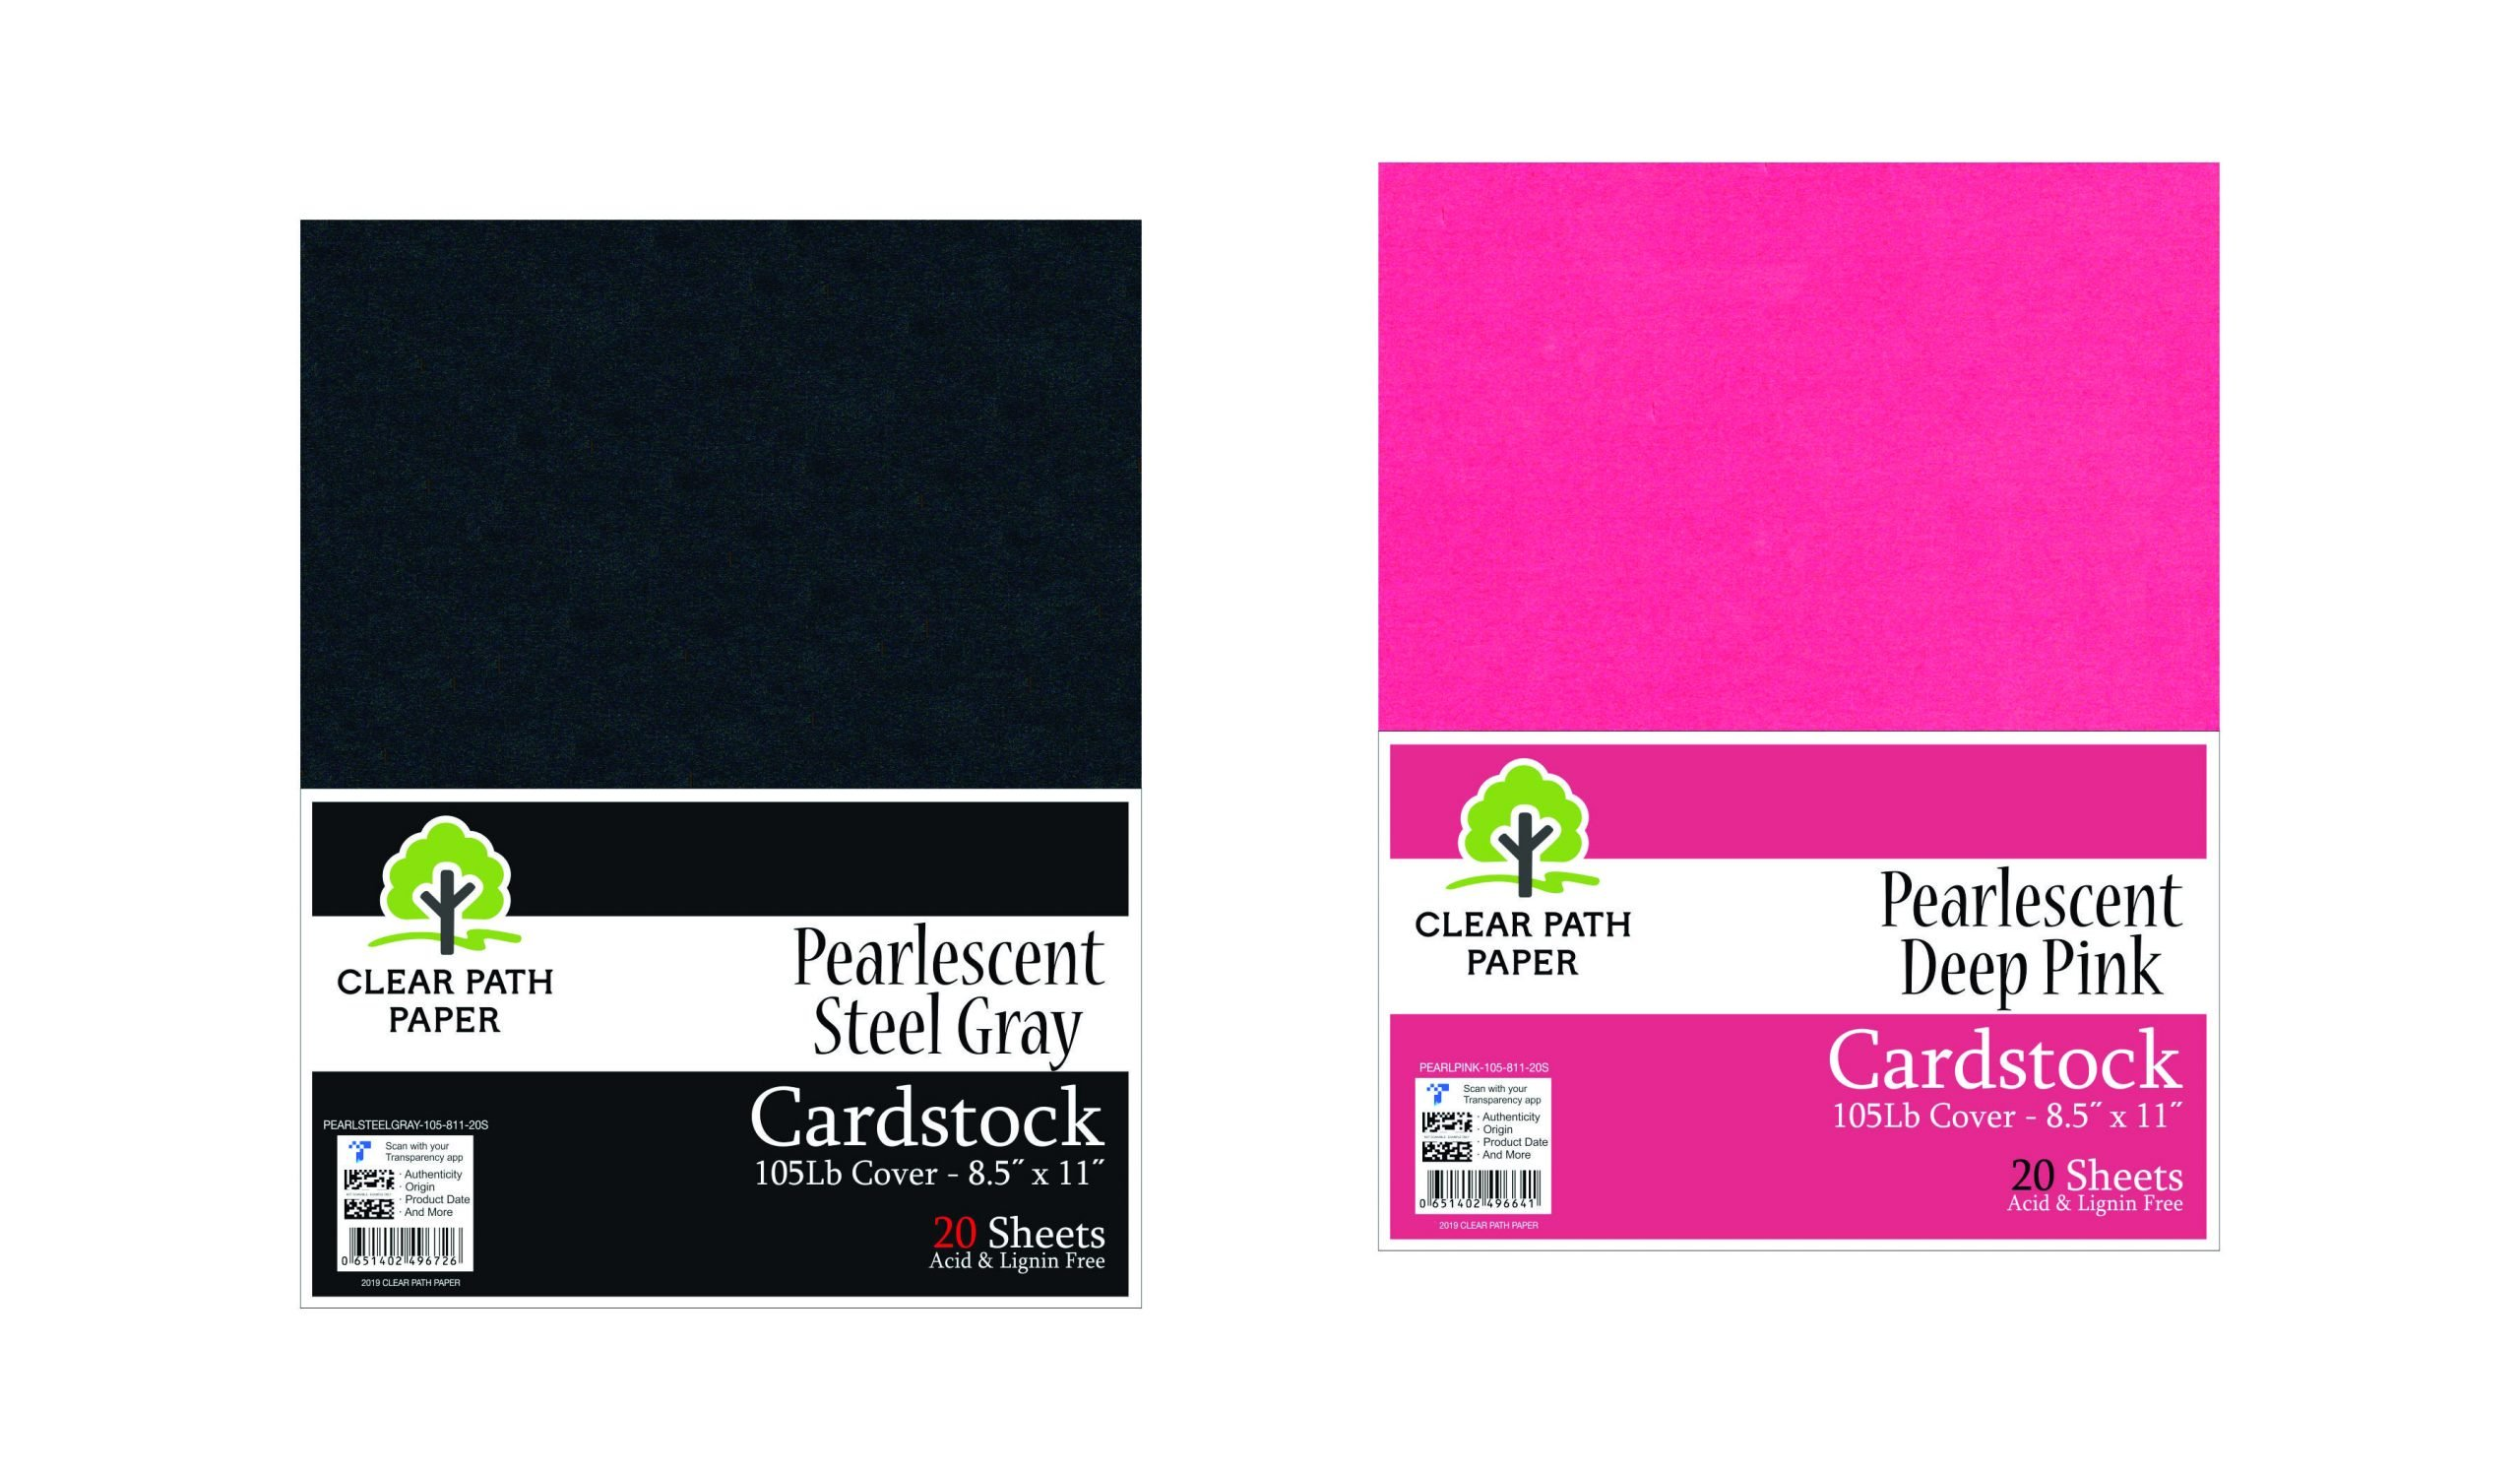 Image of an Amazon bundle of Clear Path Paper cardstock in Pearlescent Deep Pink and Pearlescent Steel Gray